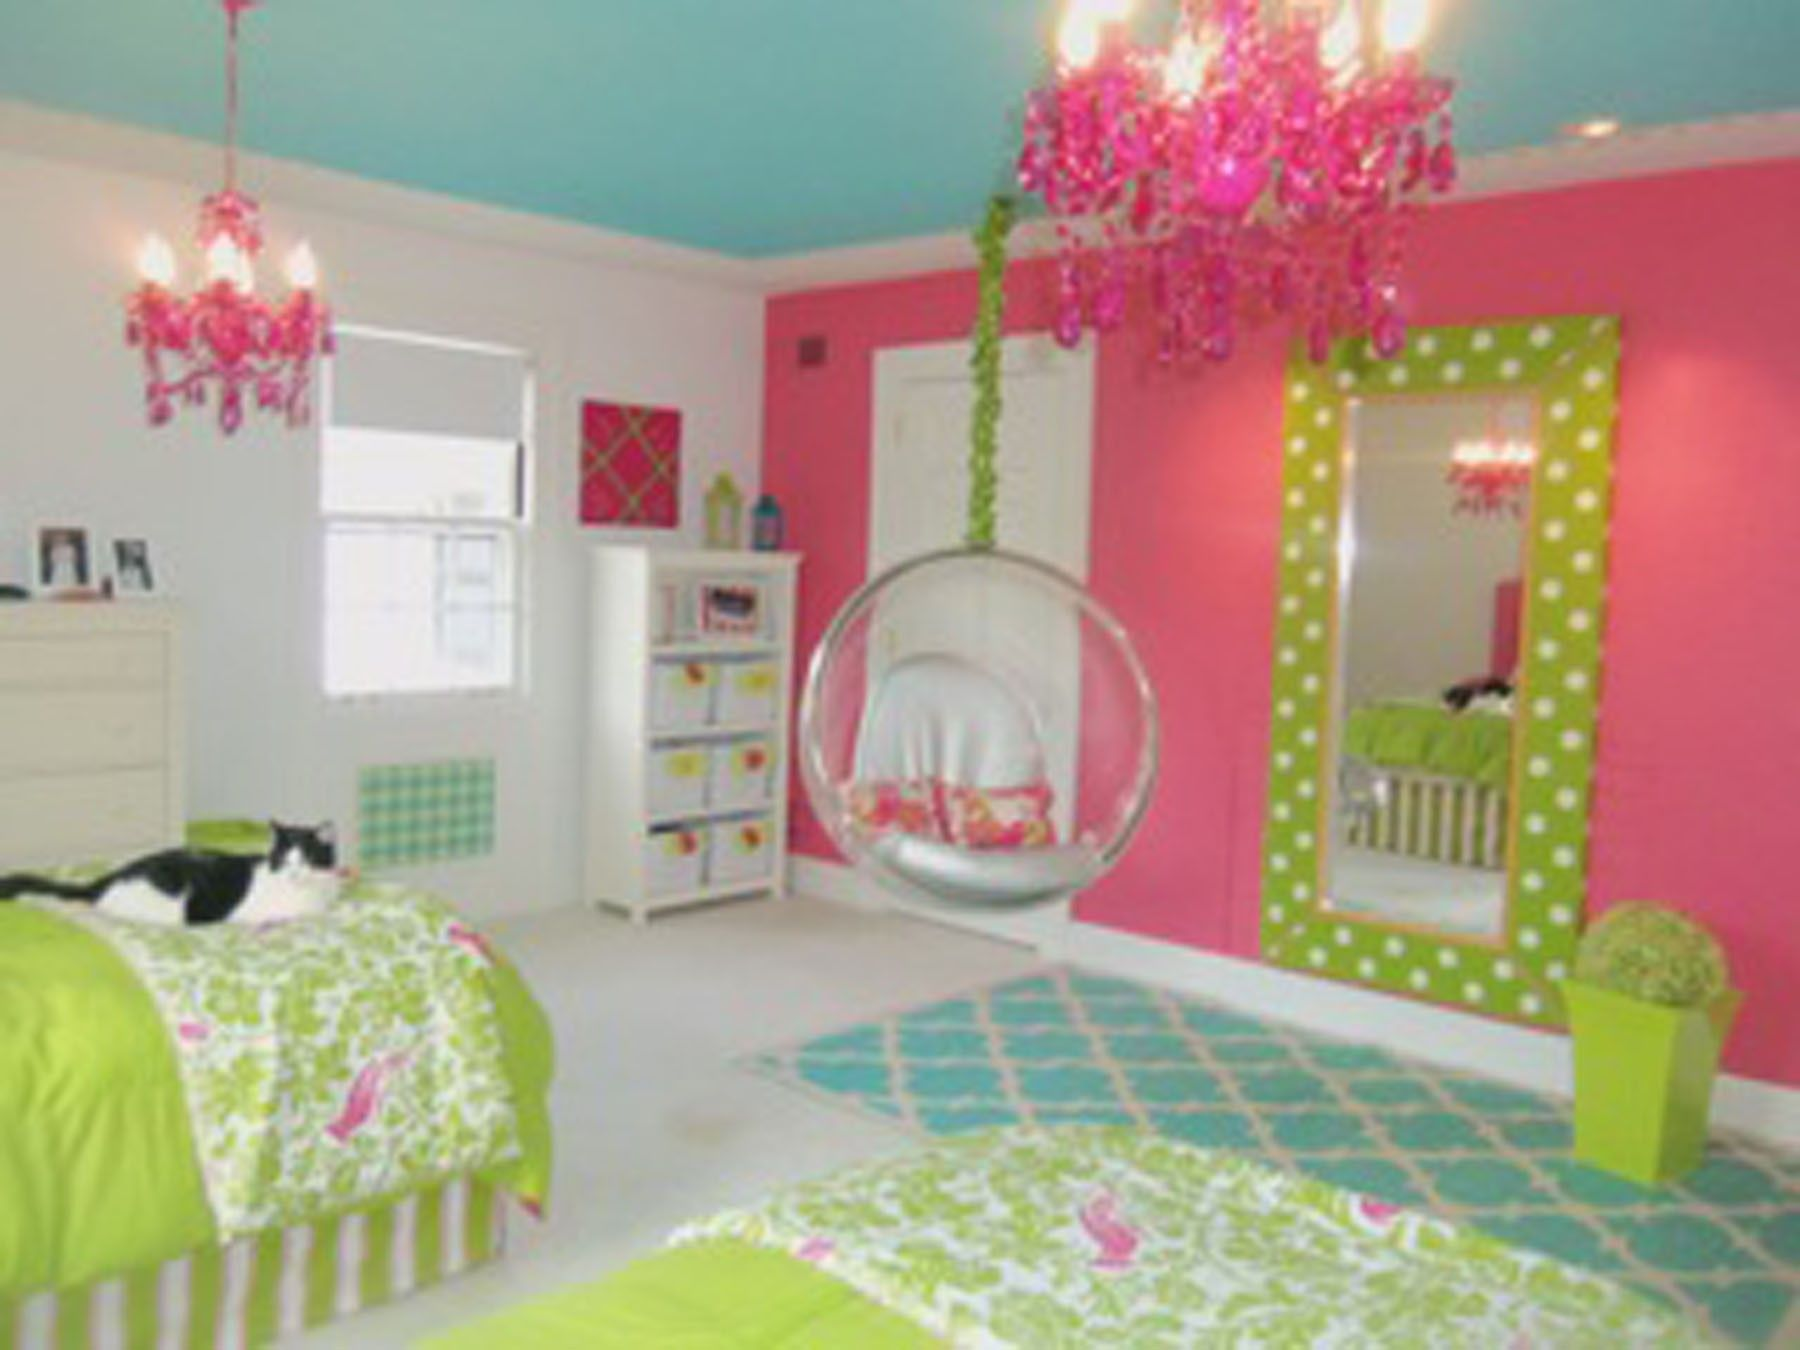 Bedroom ideas for teenage girls light pink - Chic Tween Bedroom Ideas For Teenage Girl With White Wooden